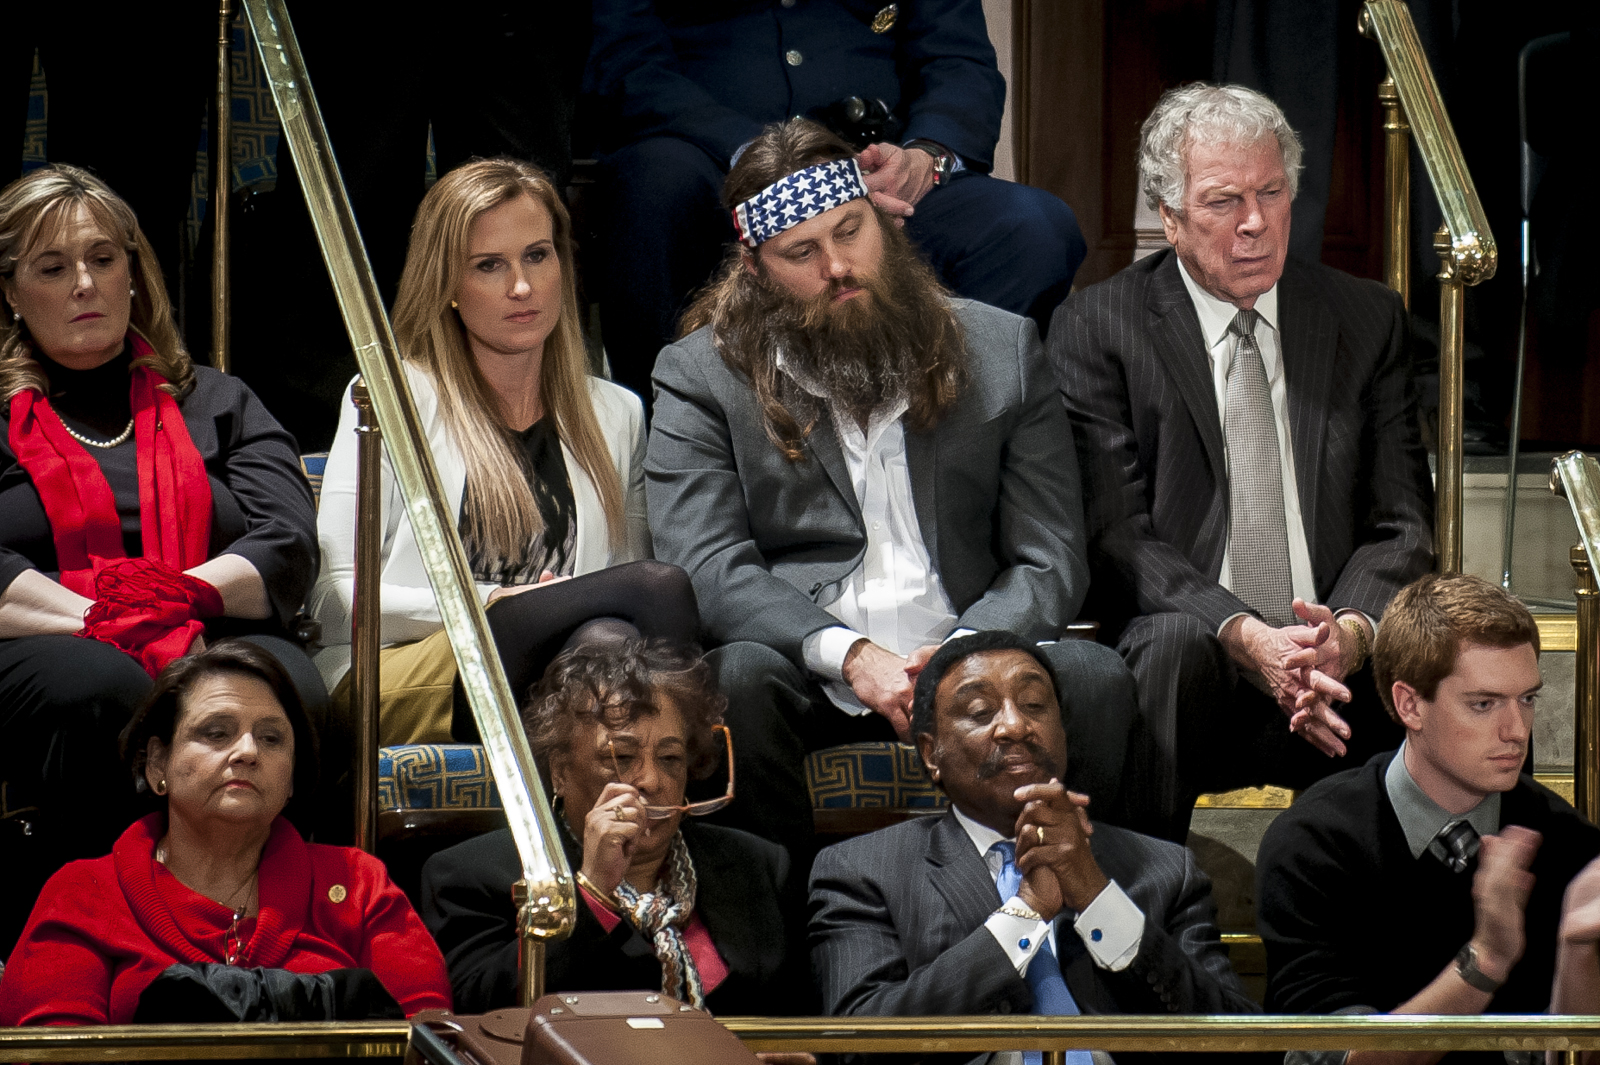 """Duck Dynasty"" cast member Willie Robertson (headband) looks on as U.S. President Barack Obama delivers the State of the Union address to a joint session of Congress at the Capitol in Washington, D.C., U.S., on Tuesday, Jan. 28, 2014. Photographer: Pete Marovich/Bloomberg"